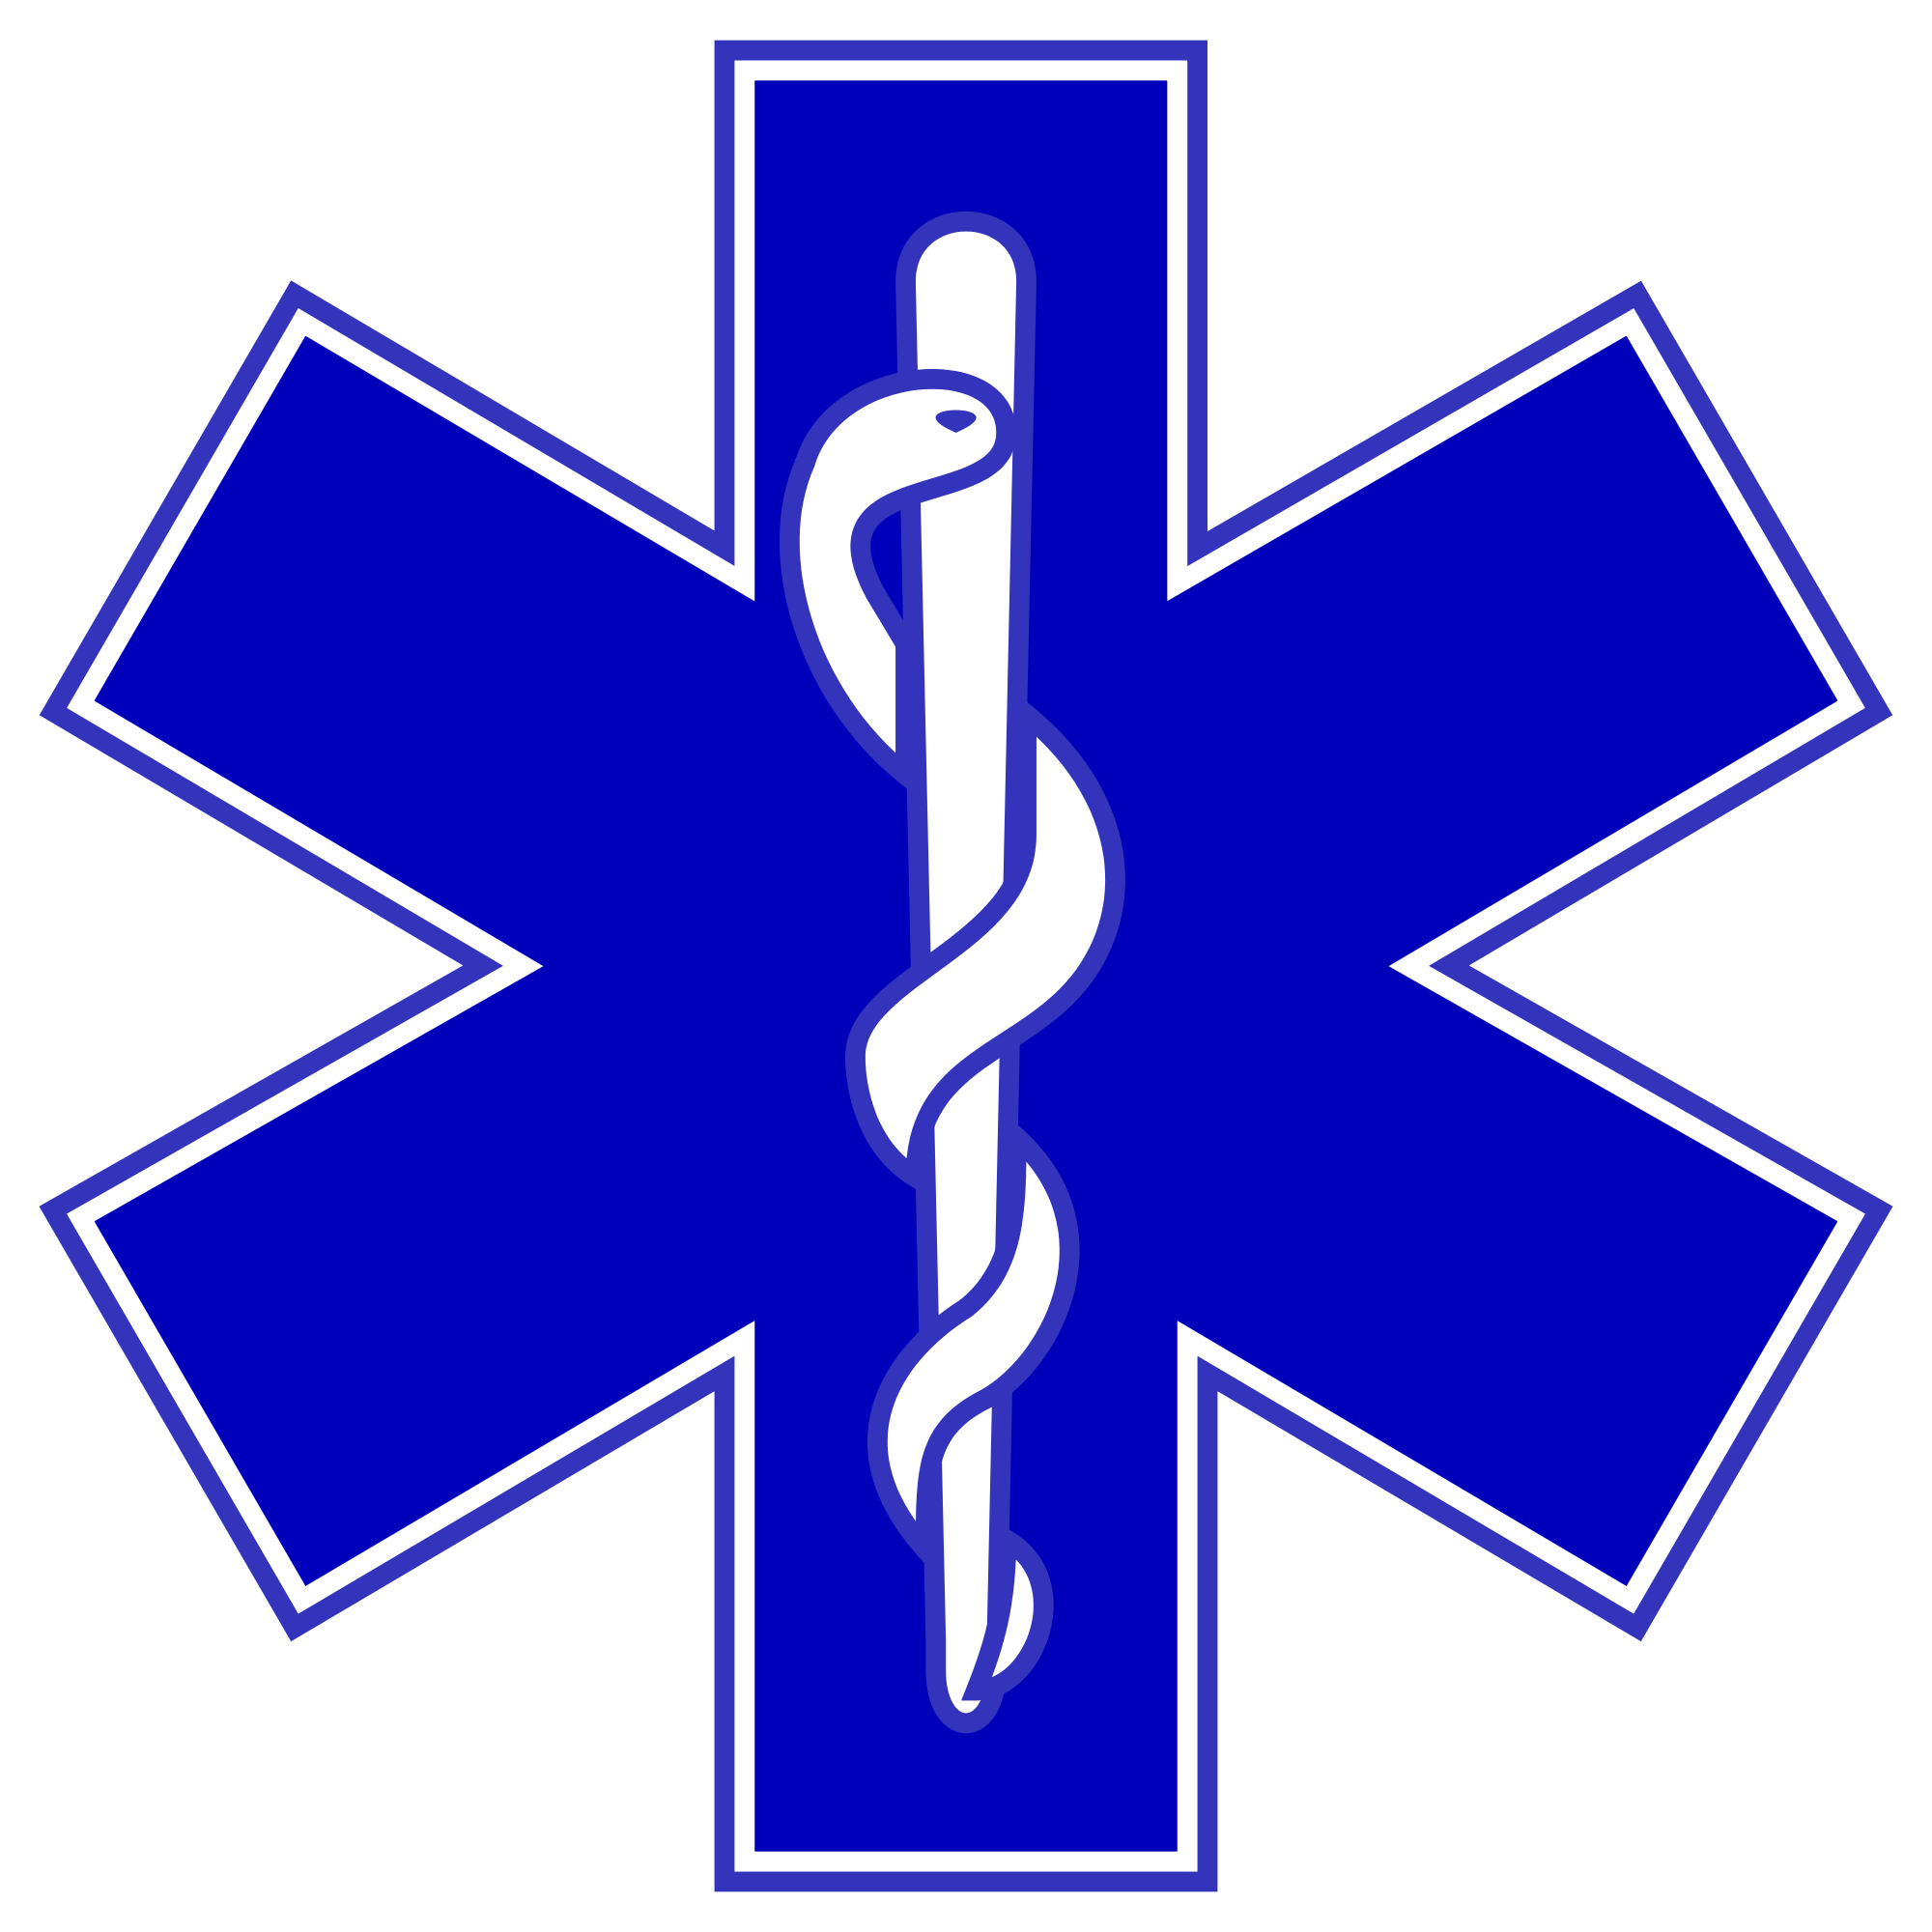 Free paramedic cliparts download. Emergency clipart refresher training